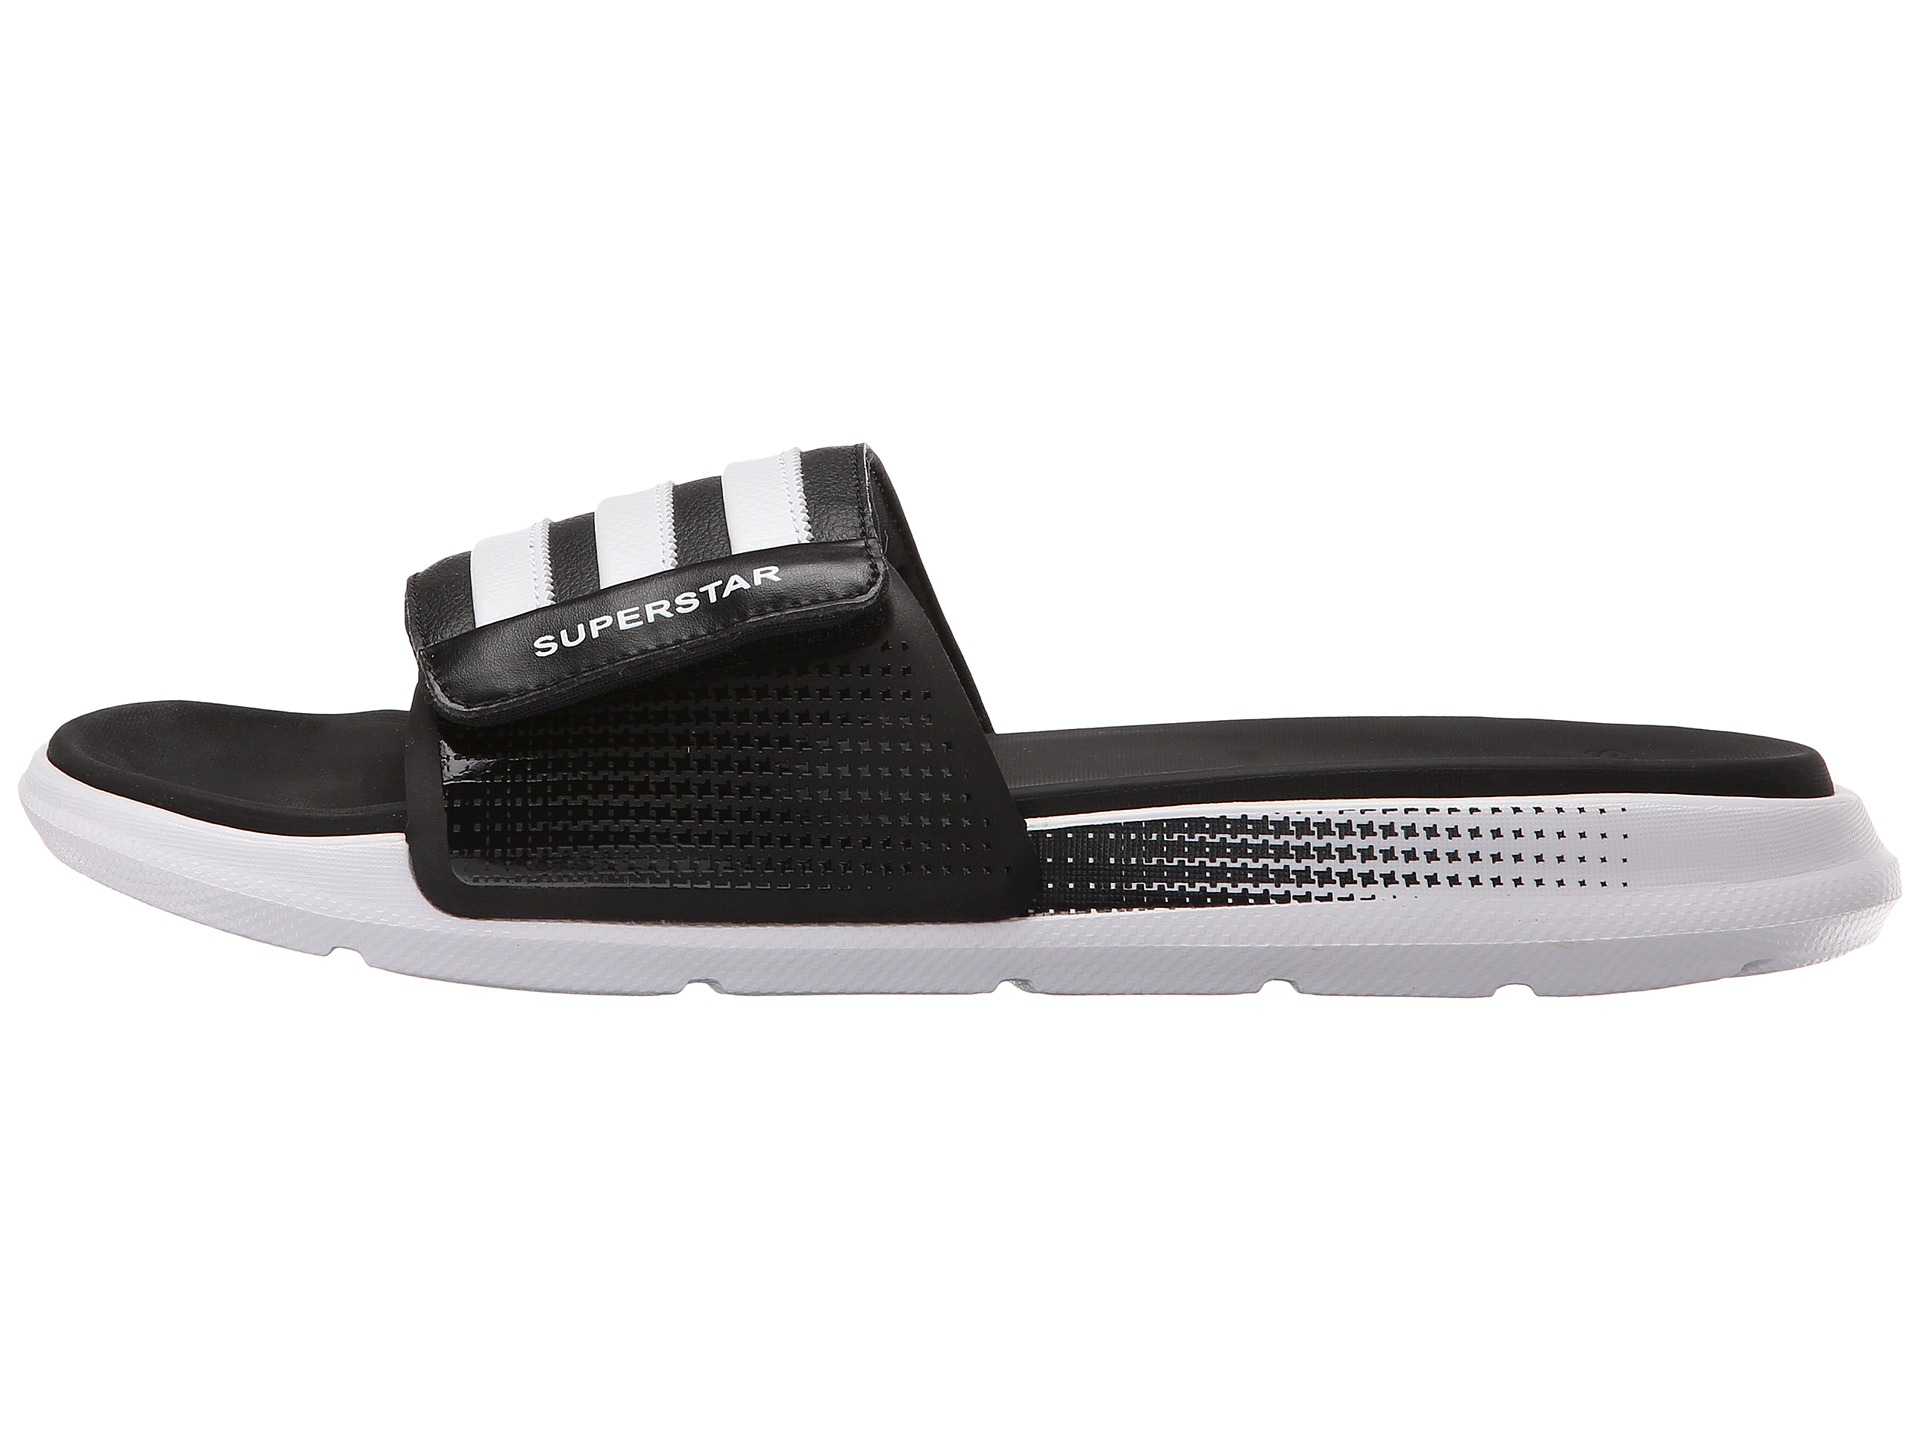 adidas superstar 4g slide - mens